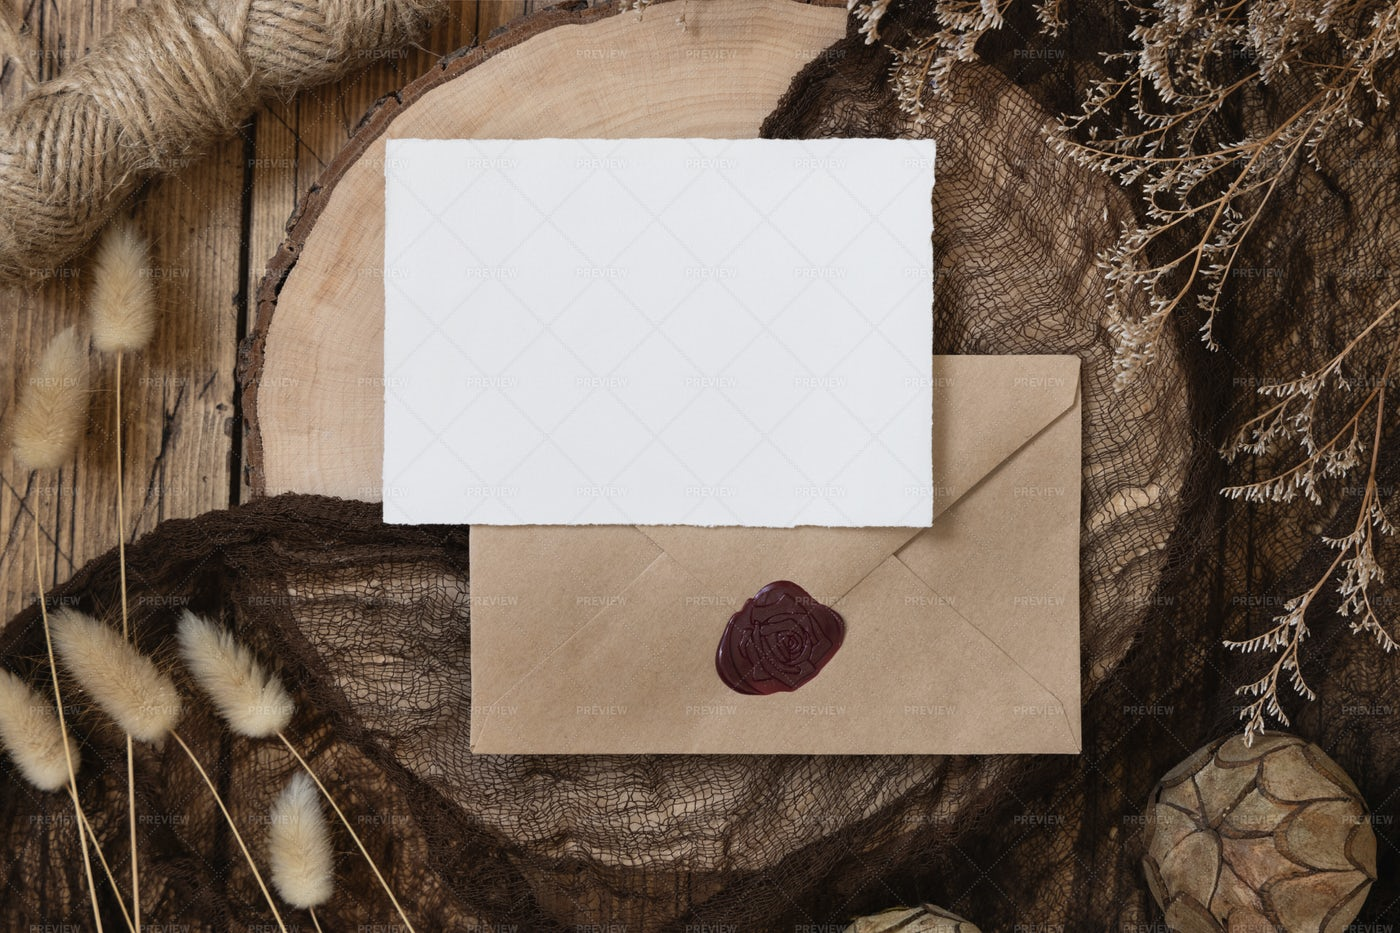 Card On Envelope And Wooden Table: Stock Photos